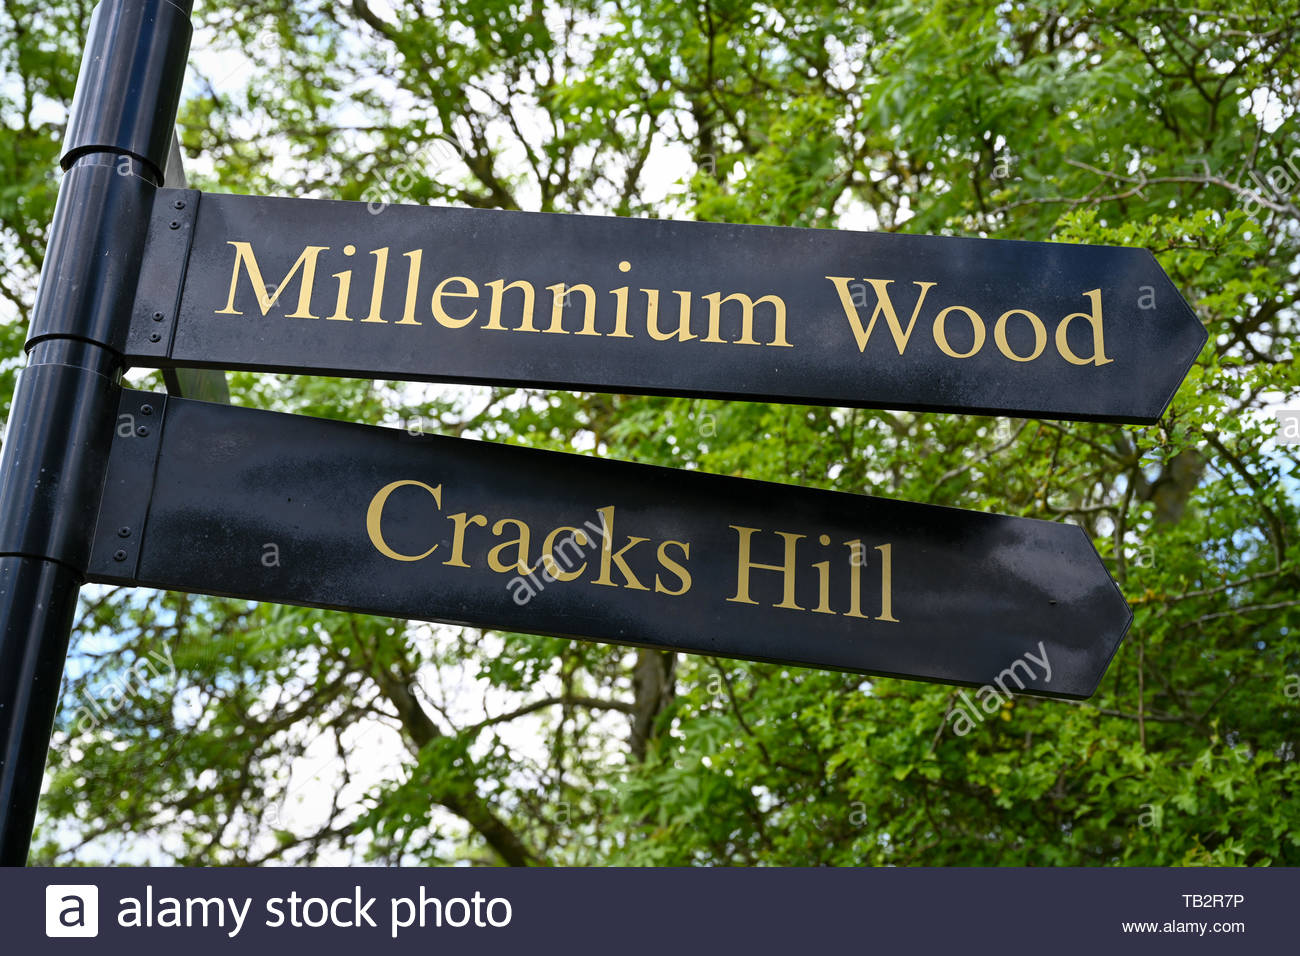 Modern looking black and gold sign on a path in the English countryside. - Stock Image